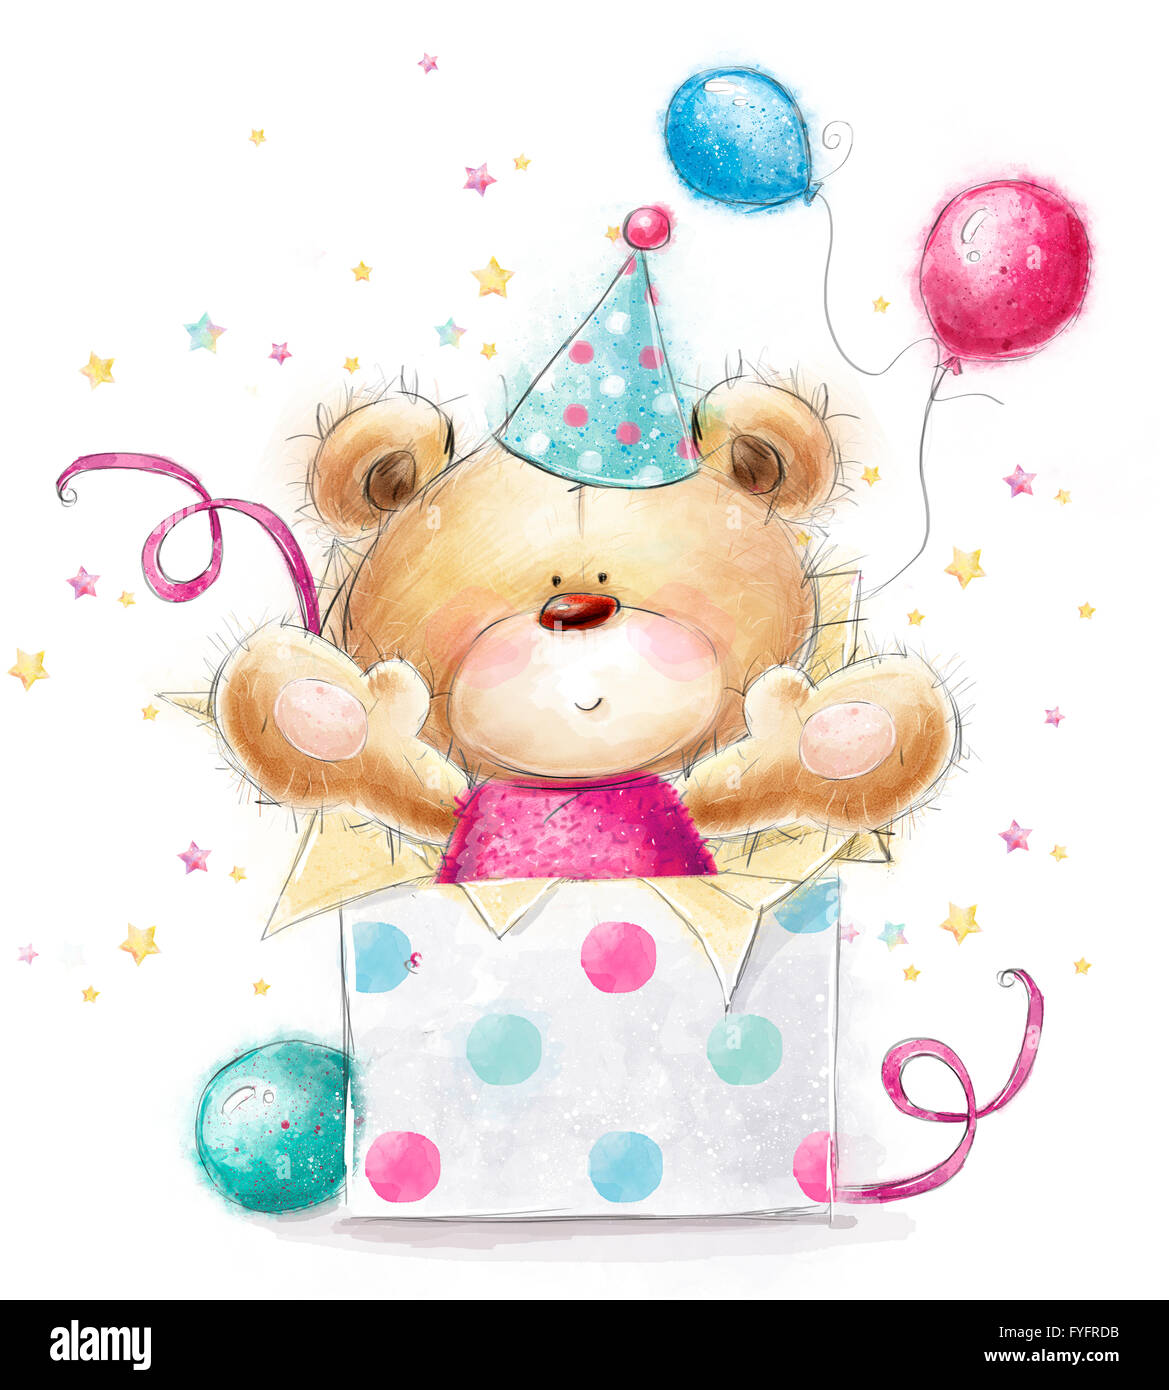 Teddy bear with the gifthappy birthday cardckground with bear teddy bear with the gifthappy birthday cardckground with bear and gifts and balloonsrty invitation filmwisefo